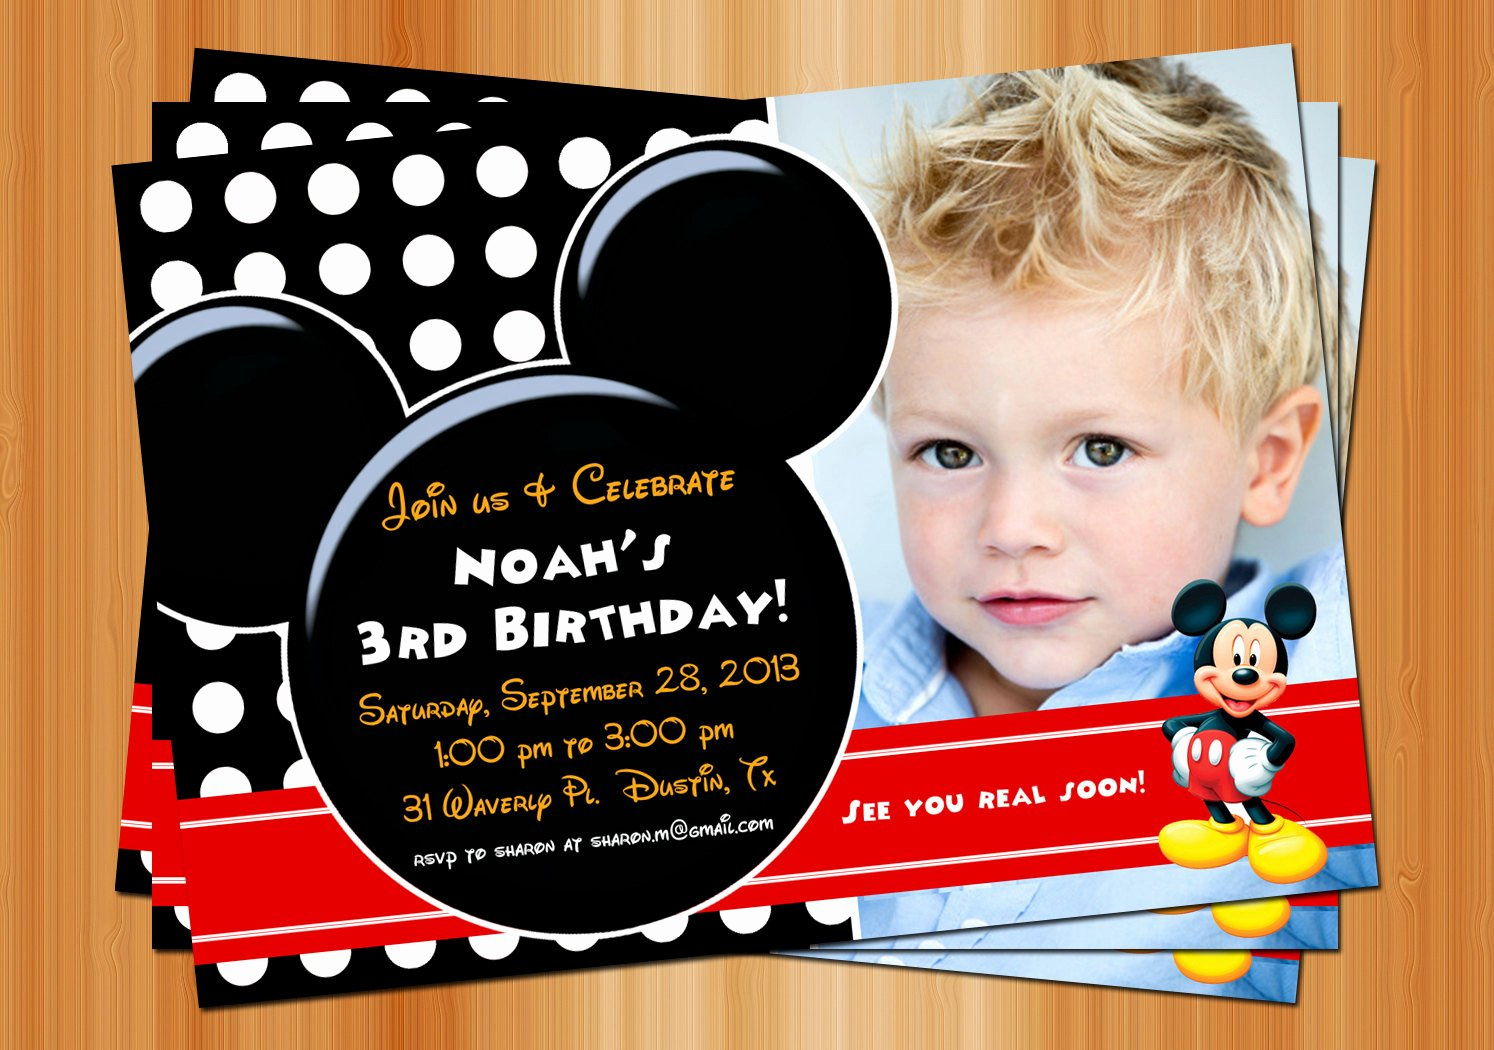 Mickey Mouse Picture Invitations Best Of Mickey Mouse Clubhouse Invitations for Special Birthday Party